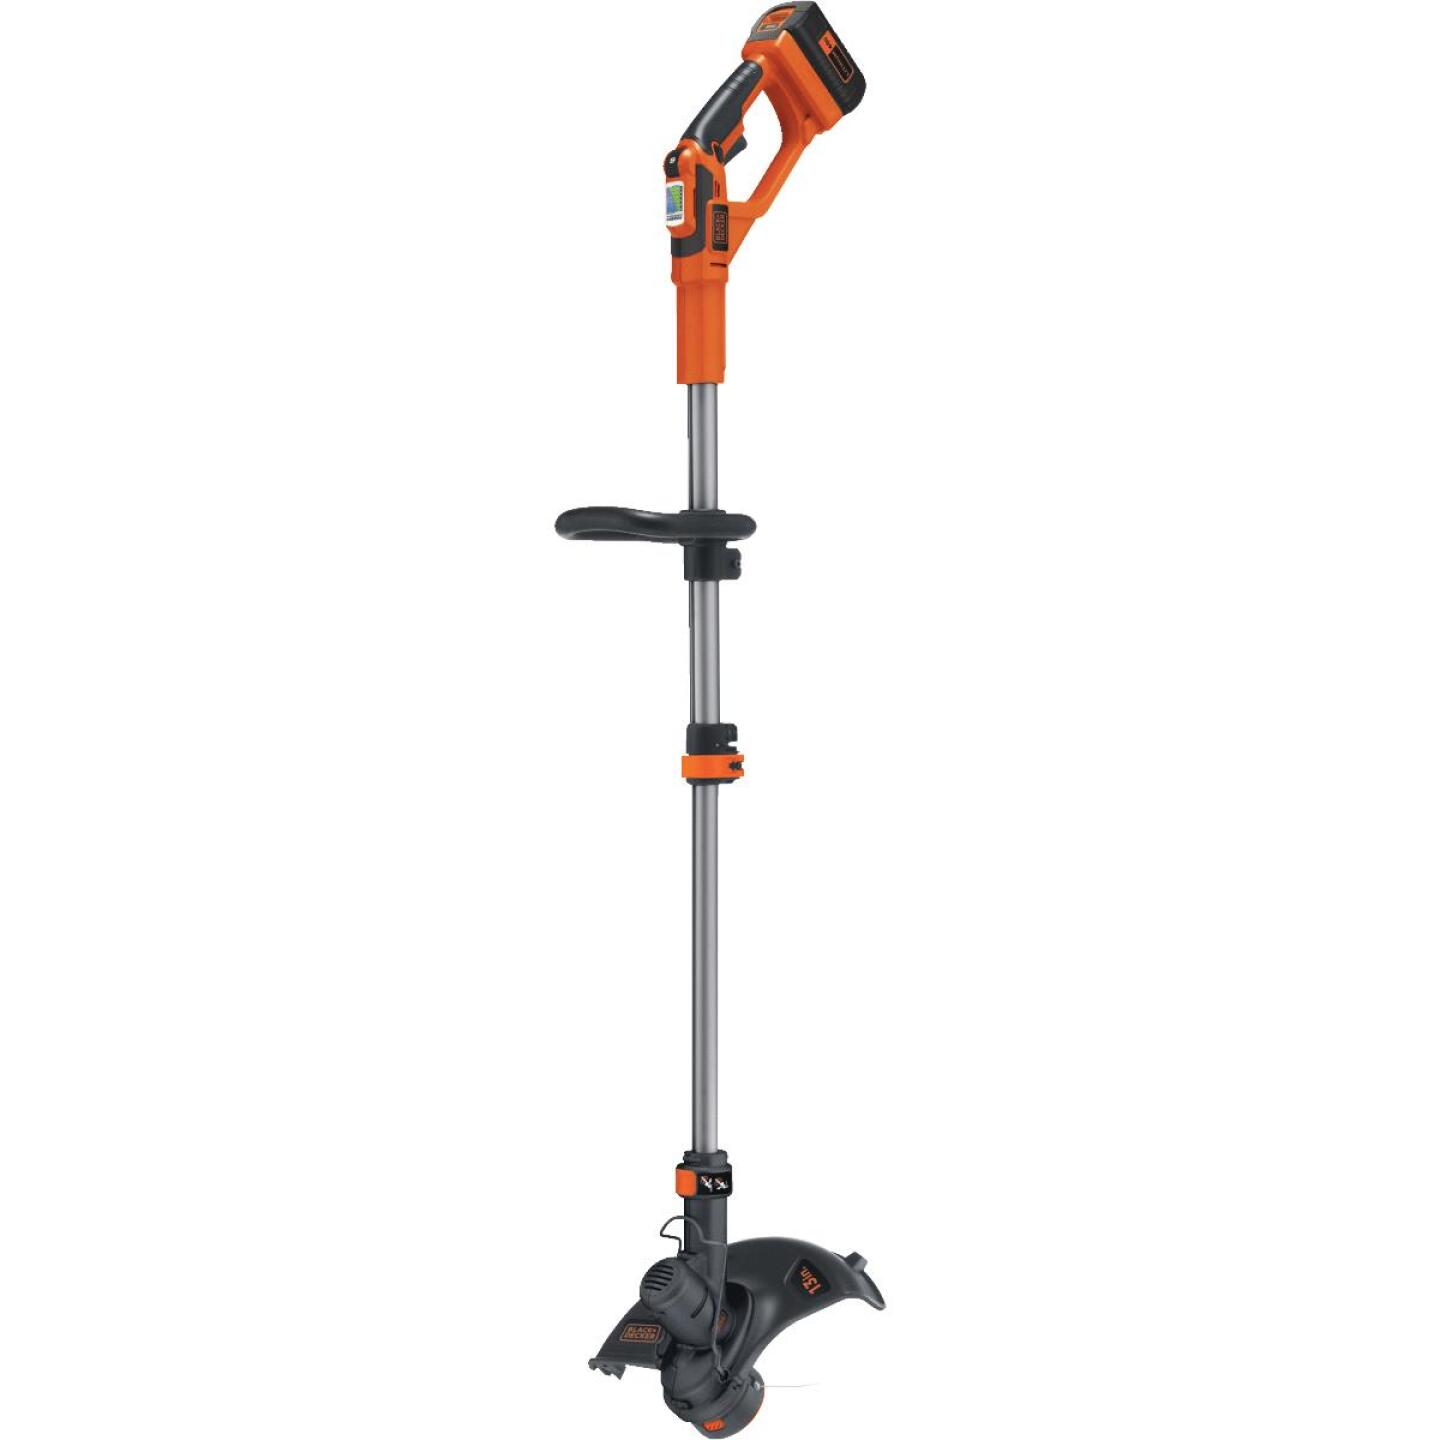 Black & Decker 40V MAX 13 In. Lithium Ion Straight Cordless String Trimmer Image 1